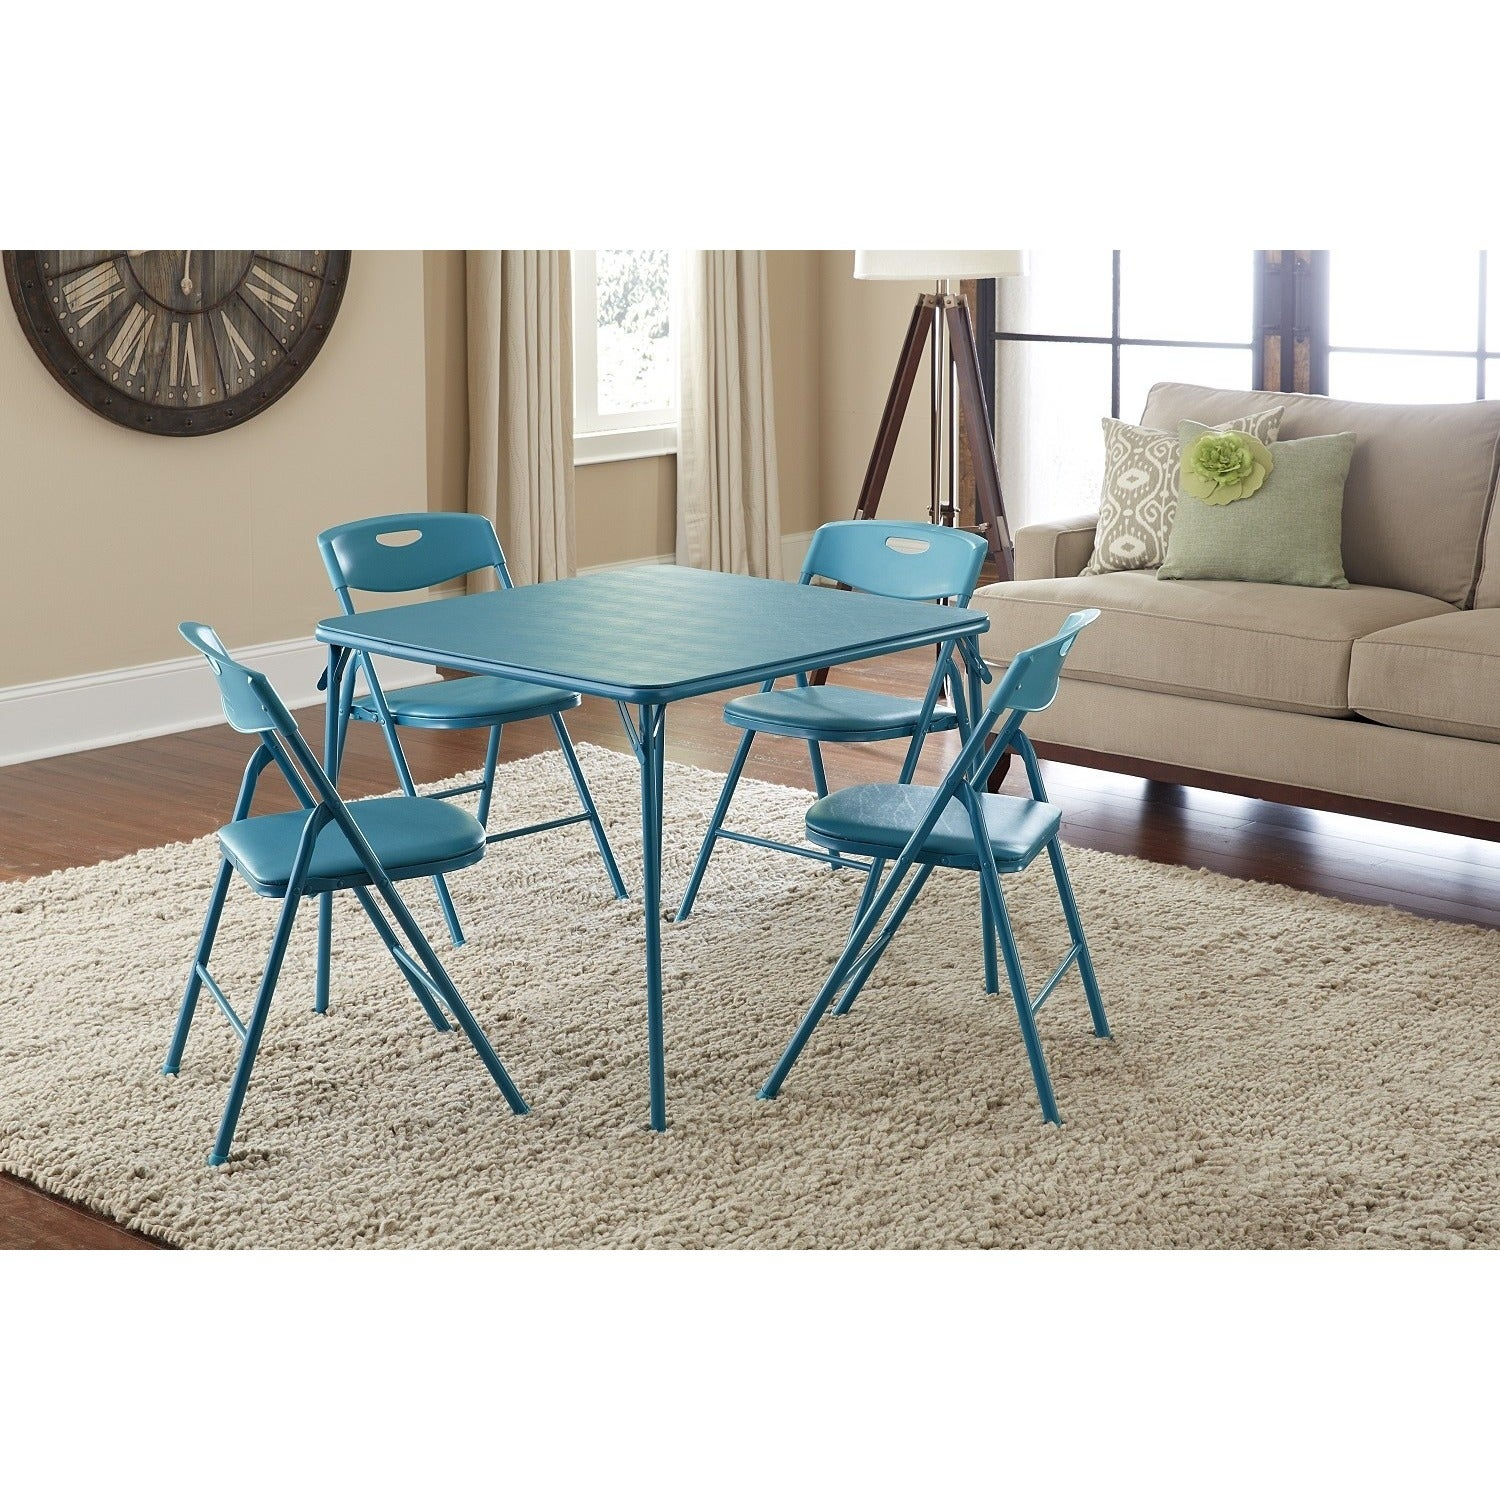 The Curated Nomad Hillard 5-piece Folding Table and Chairs Set ...